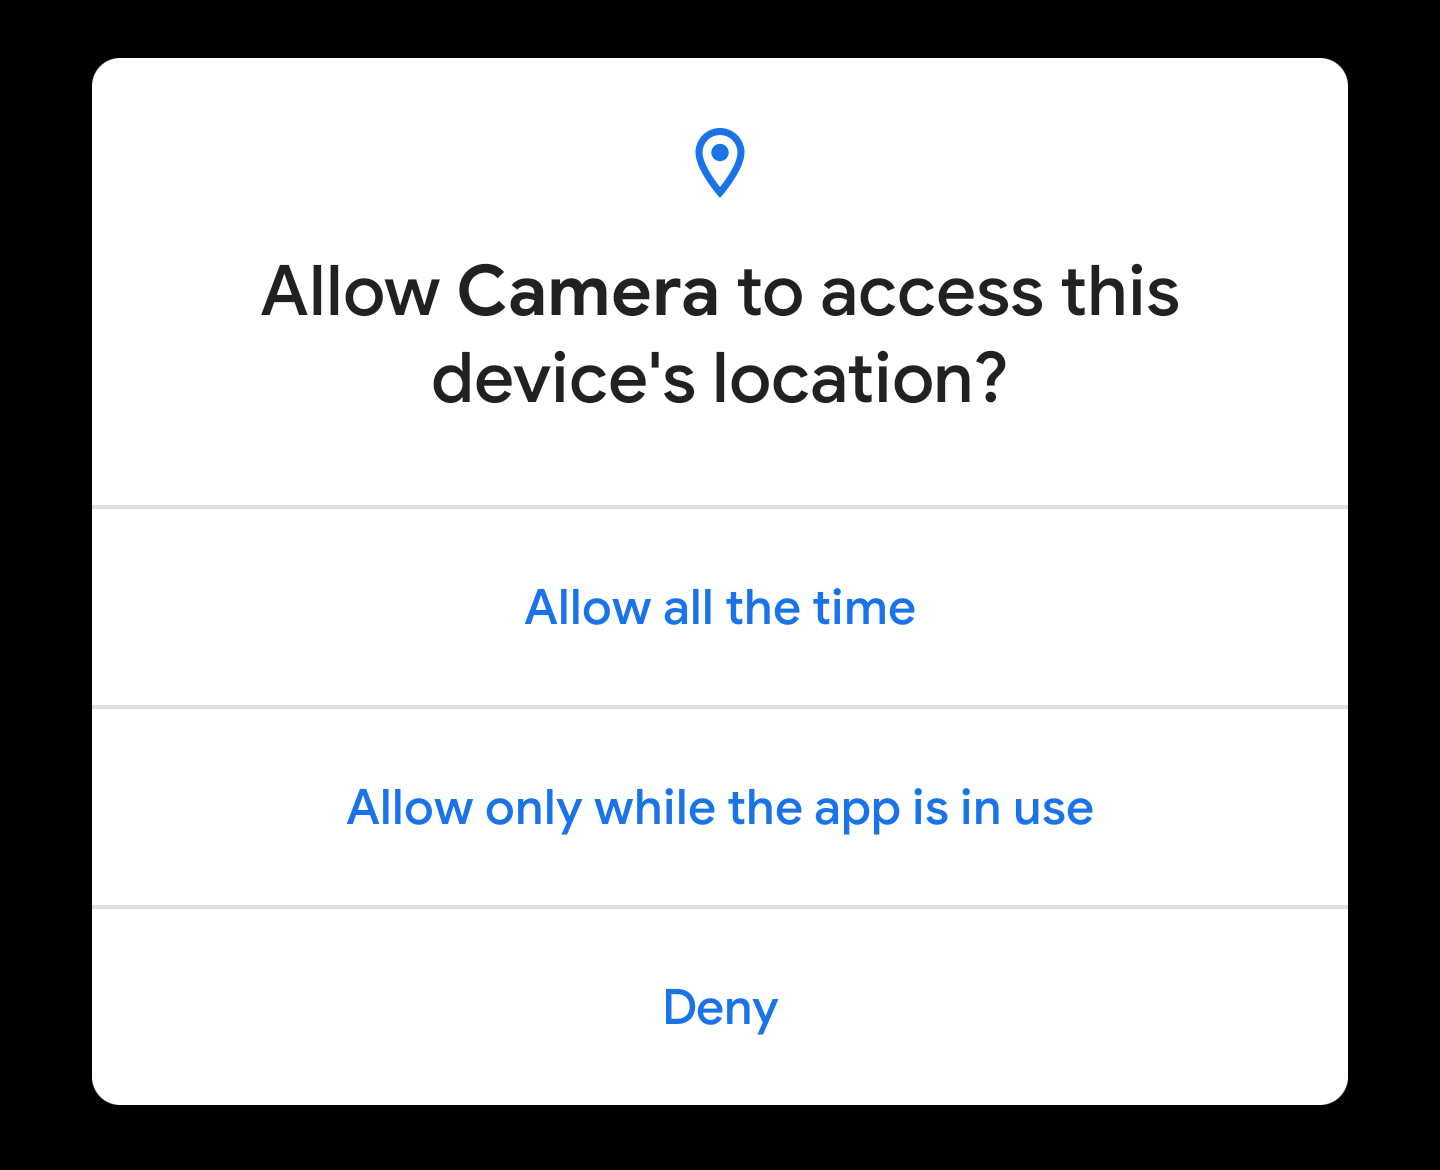 Android Q beefs up privacy with new limits on location access